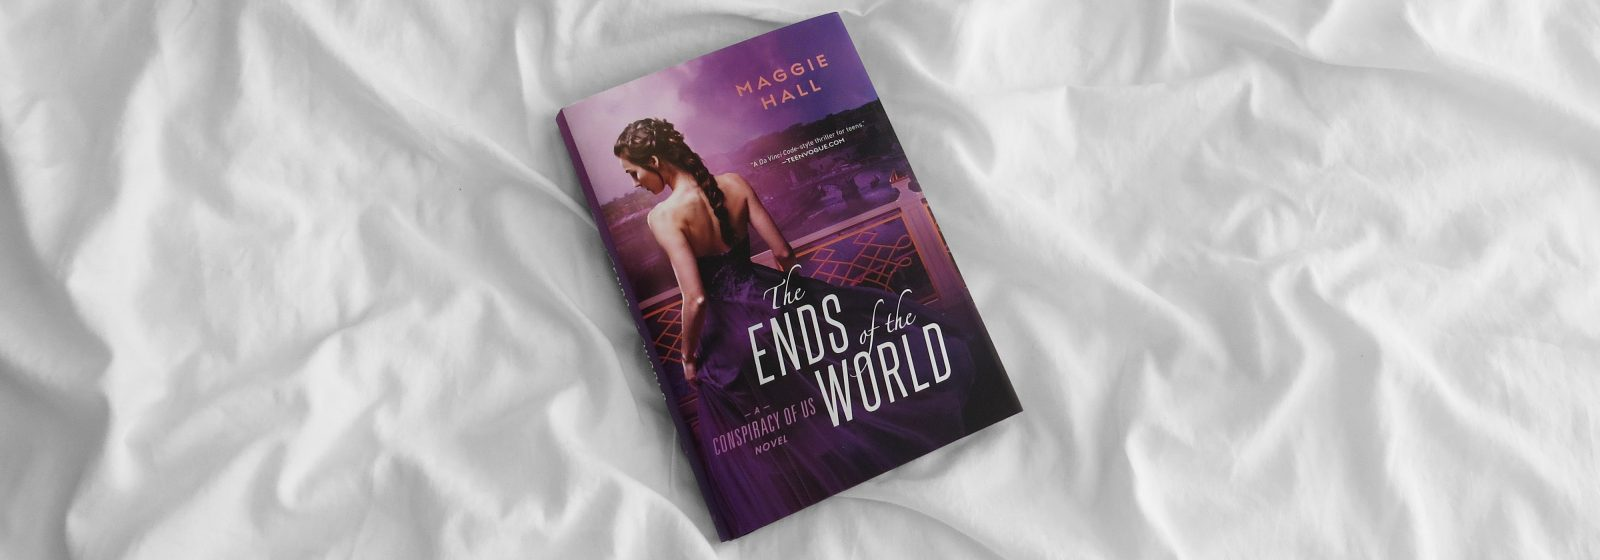 Review | The Ends of the World by Maggie Hall